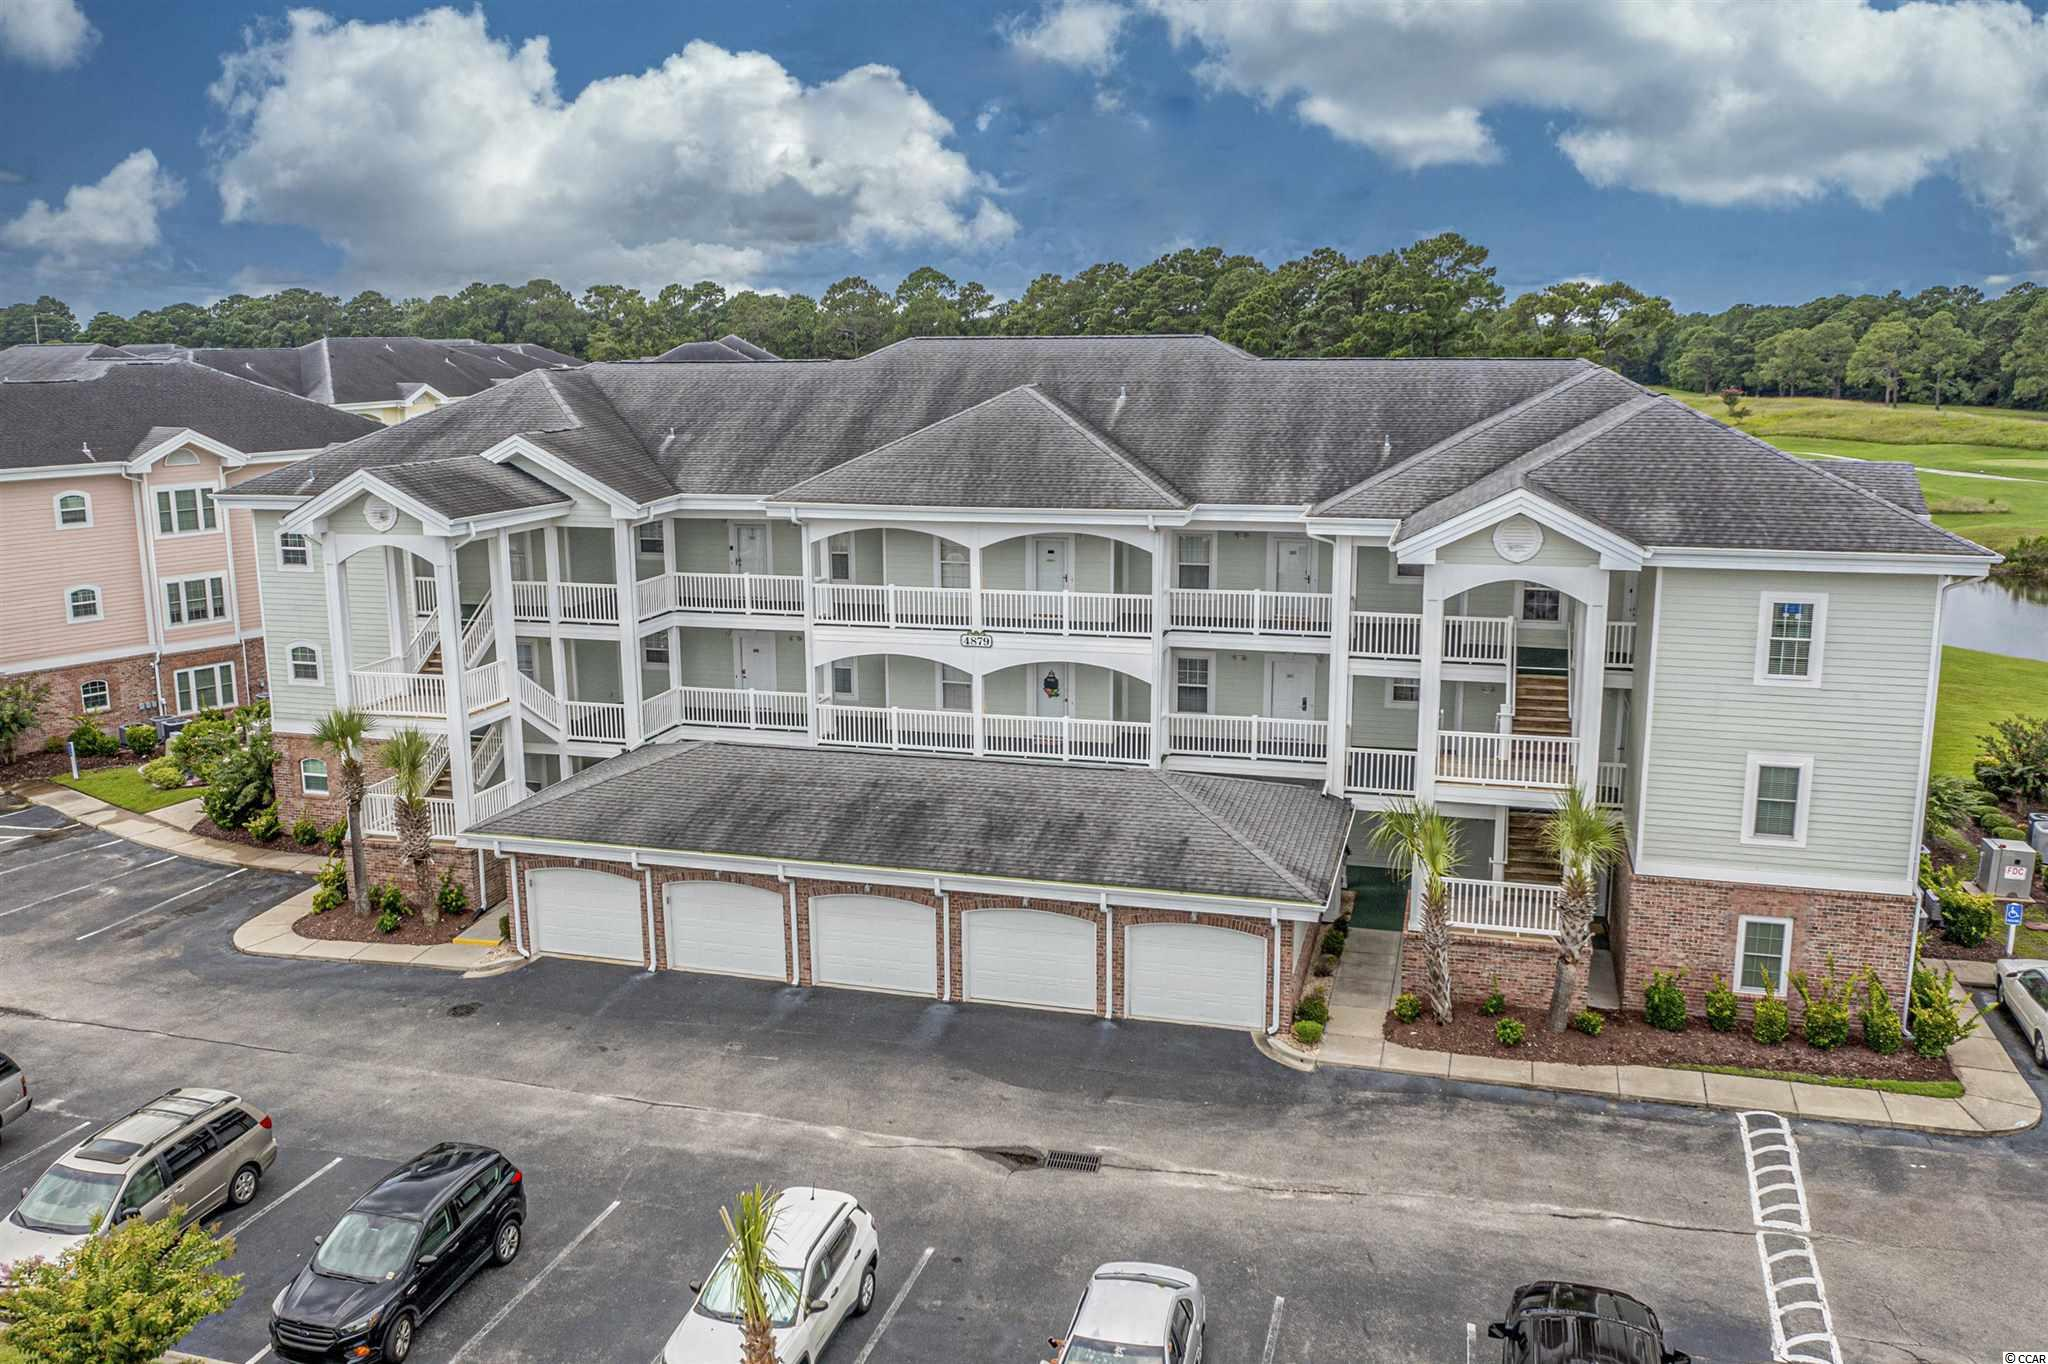 Welcome to Magnolia North a beautiful on golf course community located just west of Hwy 17 bypass just north of 48 Ave N. in Myrtle Beach. This very well maintained 3 bedroom, 2 bathroom fully appointed and furnished end unit condo features a private 1 car garage. Have your morning coffee on your private balcony with views of the pool, Pond and golf course. From the moment you step inside you will feel right at home. less than 1 mile to both the beautiful beaches of the Grand Strand and Broadway at the Beach entertainment, shopping, and restaurants. this is a must see. We all know inventory is low and this one won't last long. Do you need more information on this home, VIRTUAL TOUR VIDEO or HOA Documents? Please contact the Listing Agent OR your real estate professional today! All measurements and data are deemed reliable but are not guaranteed, purchaser and or purchaser's realtor to verify.